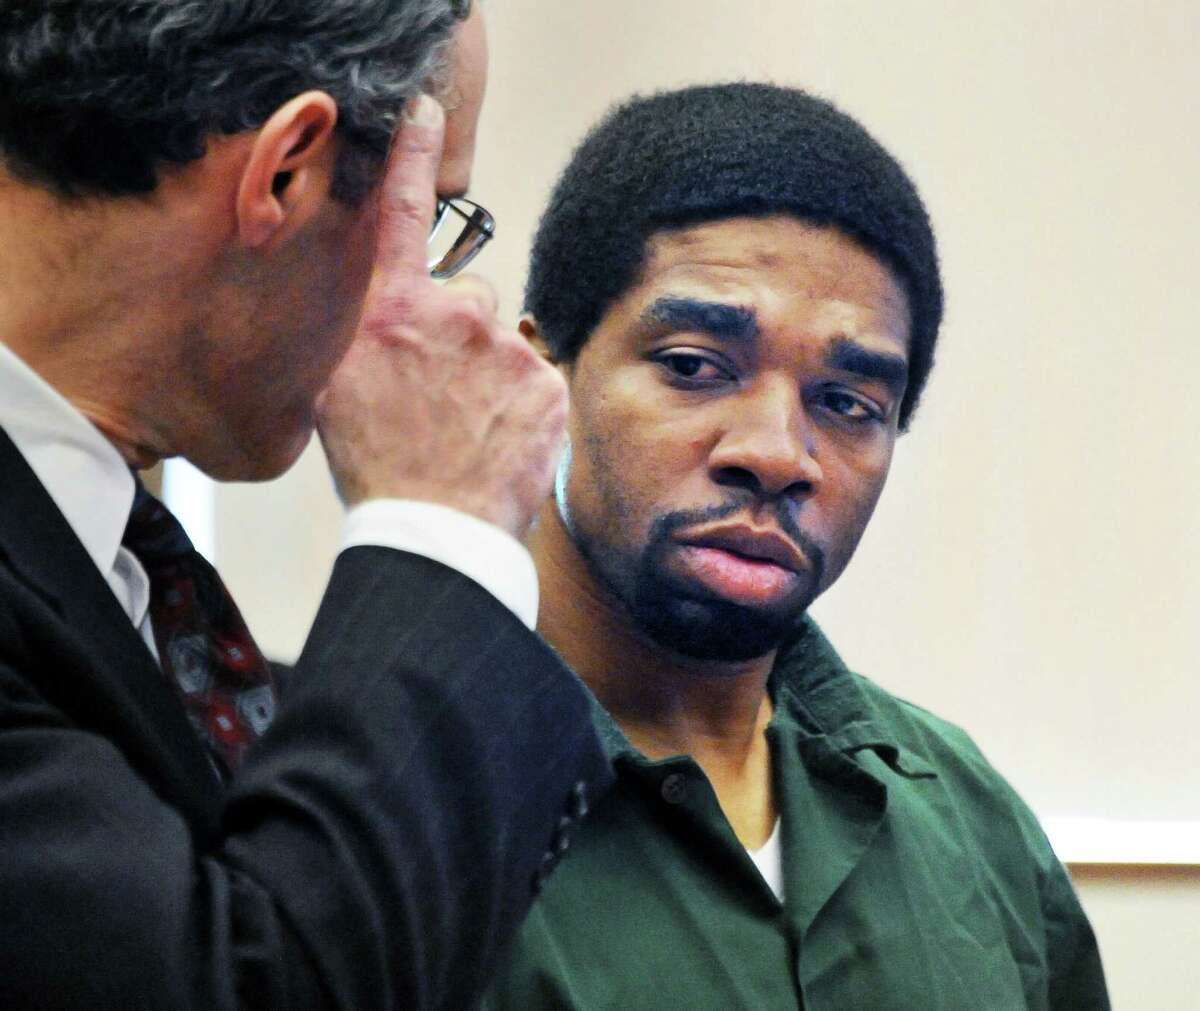 Troy Saunders, right, listens to his defense attorney Adam Parisi during his arraignment in fatal 2014 shooting of Wayne Best Jr. before County Court Judge Matthew Sypniewski Friday March 11, 2016 in Schenectady, NY. (John Carl D'Annibale / Times Union)